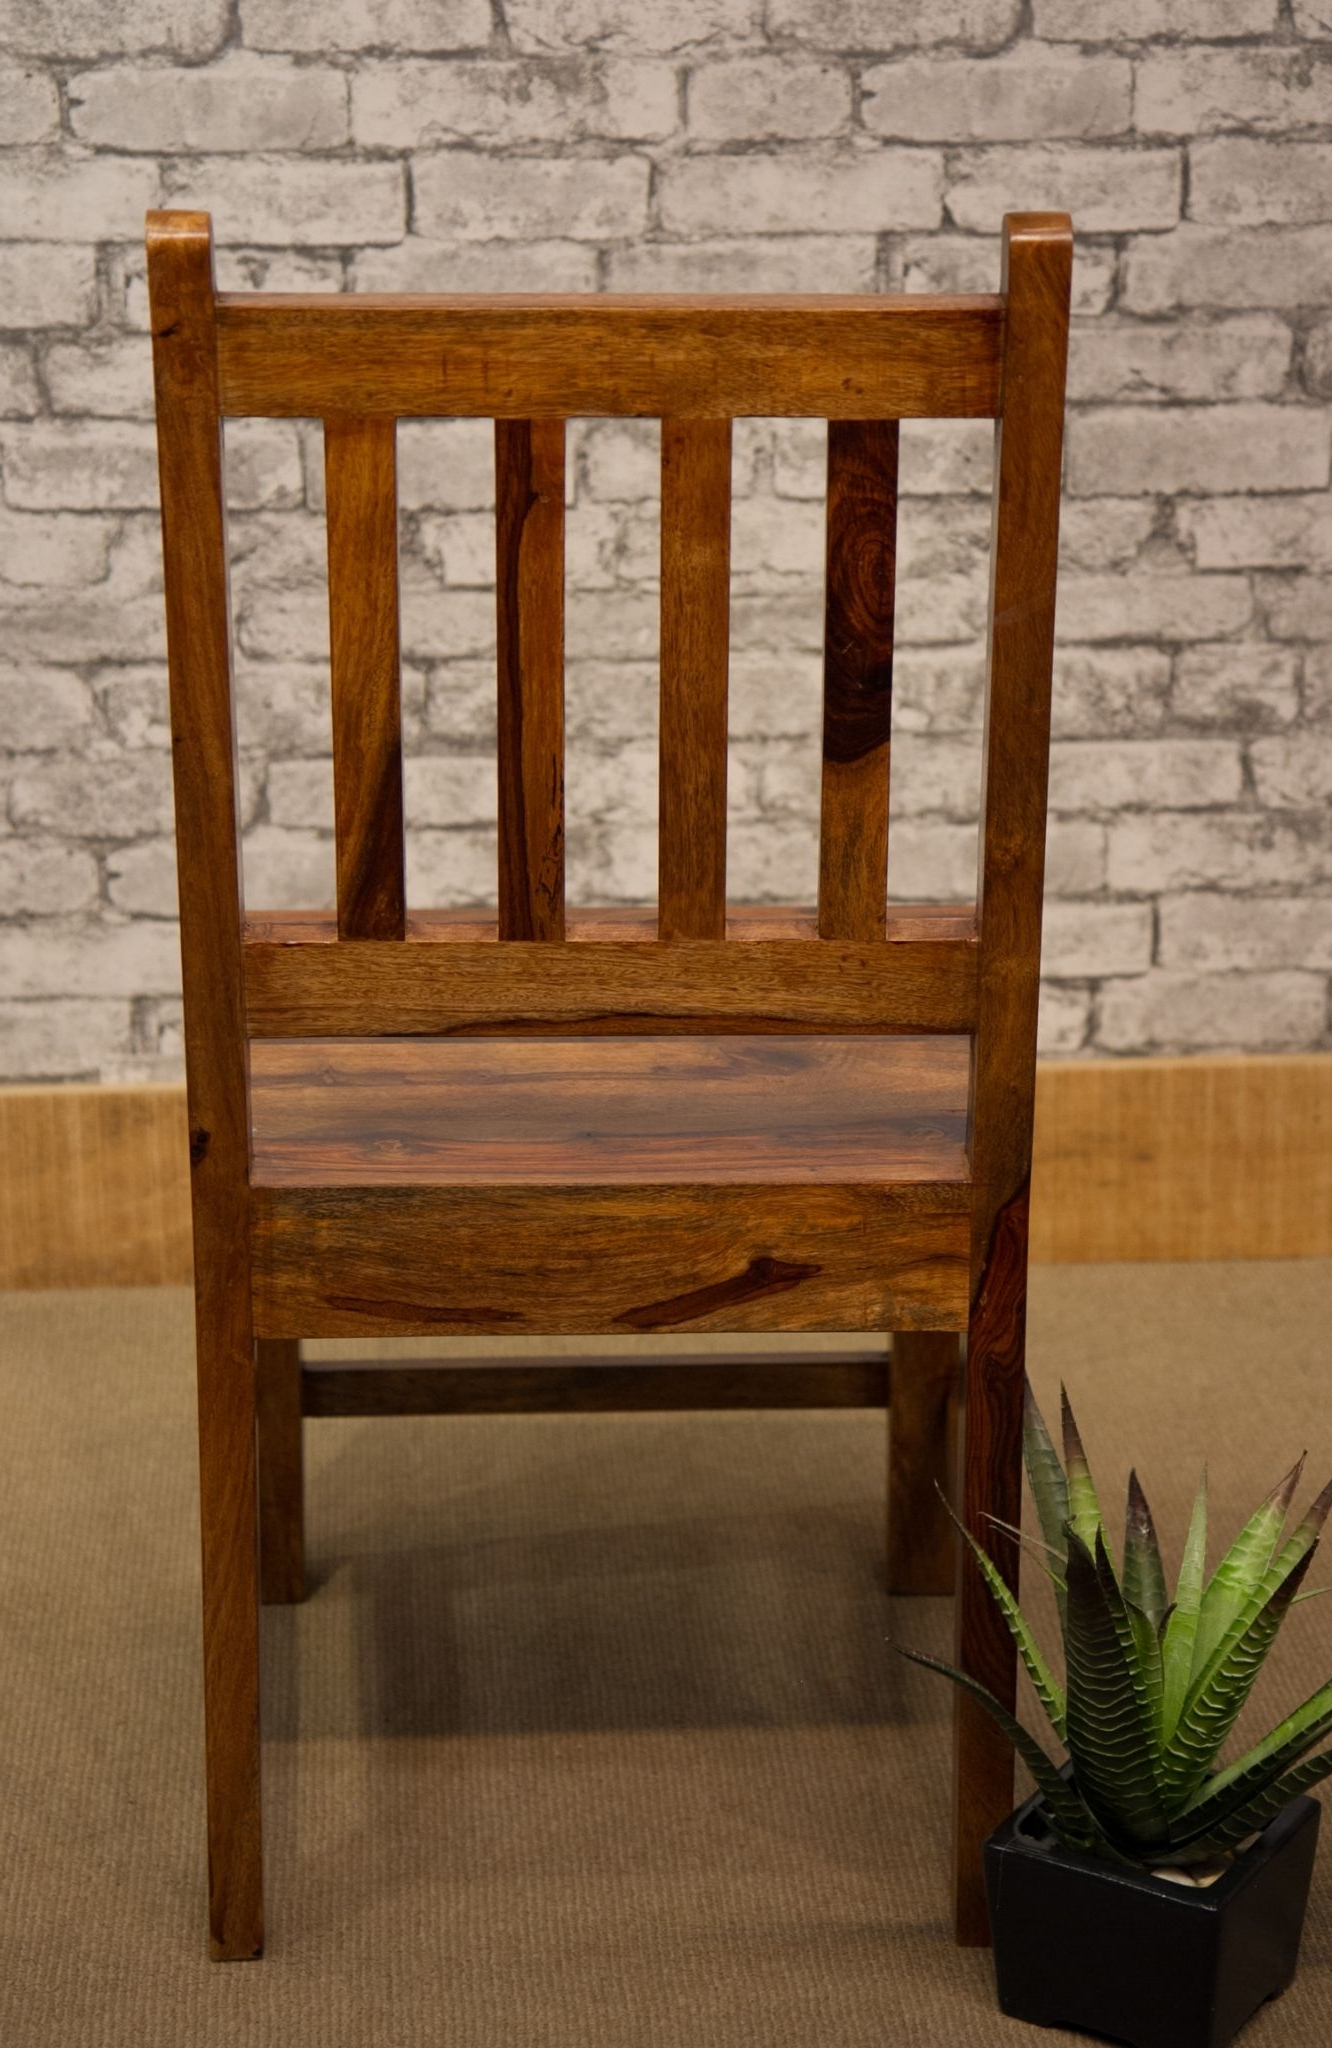 Ibf-049 Low Slat Back Sheesham Dining Chair inside Most Recently Released Sheesham Dining Chairs